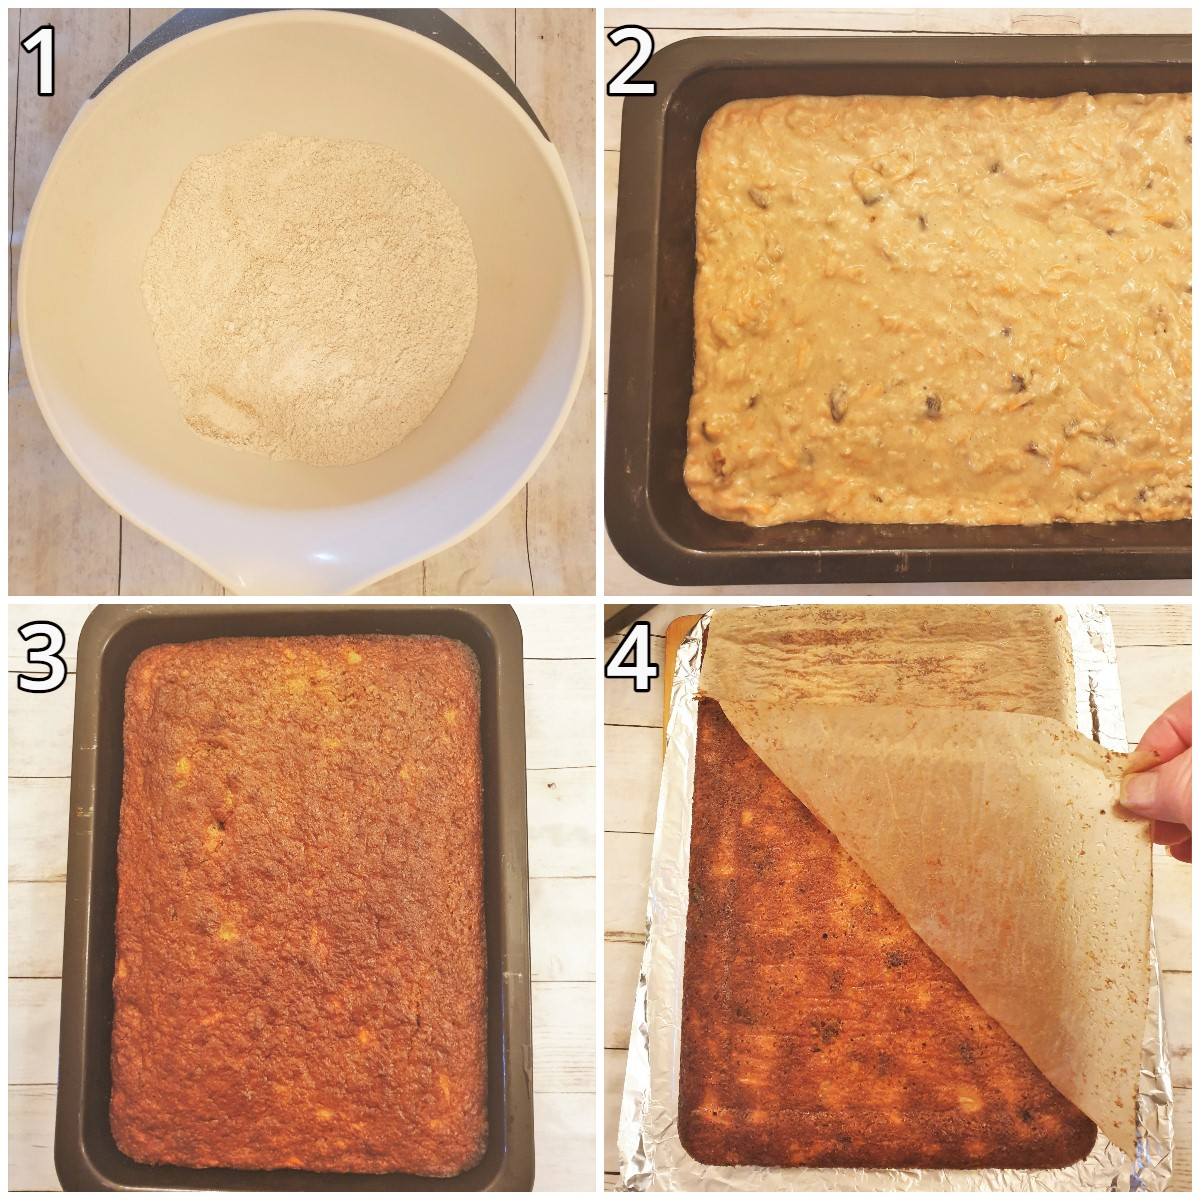 Steps for baking the cake and removing the baking parchment.